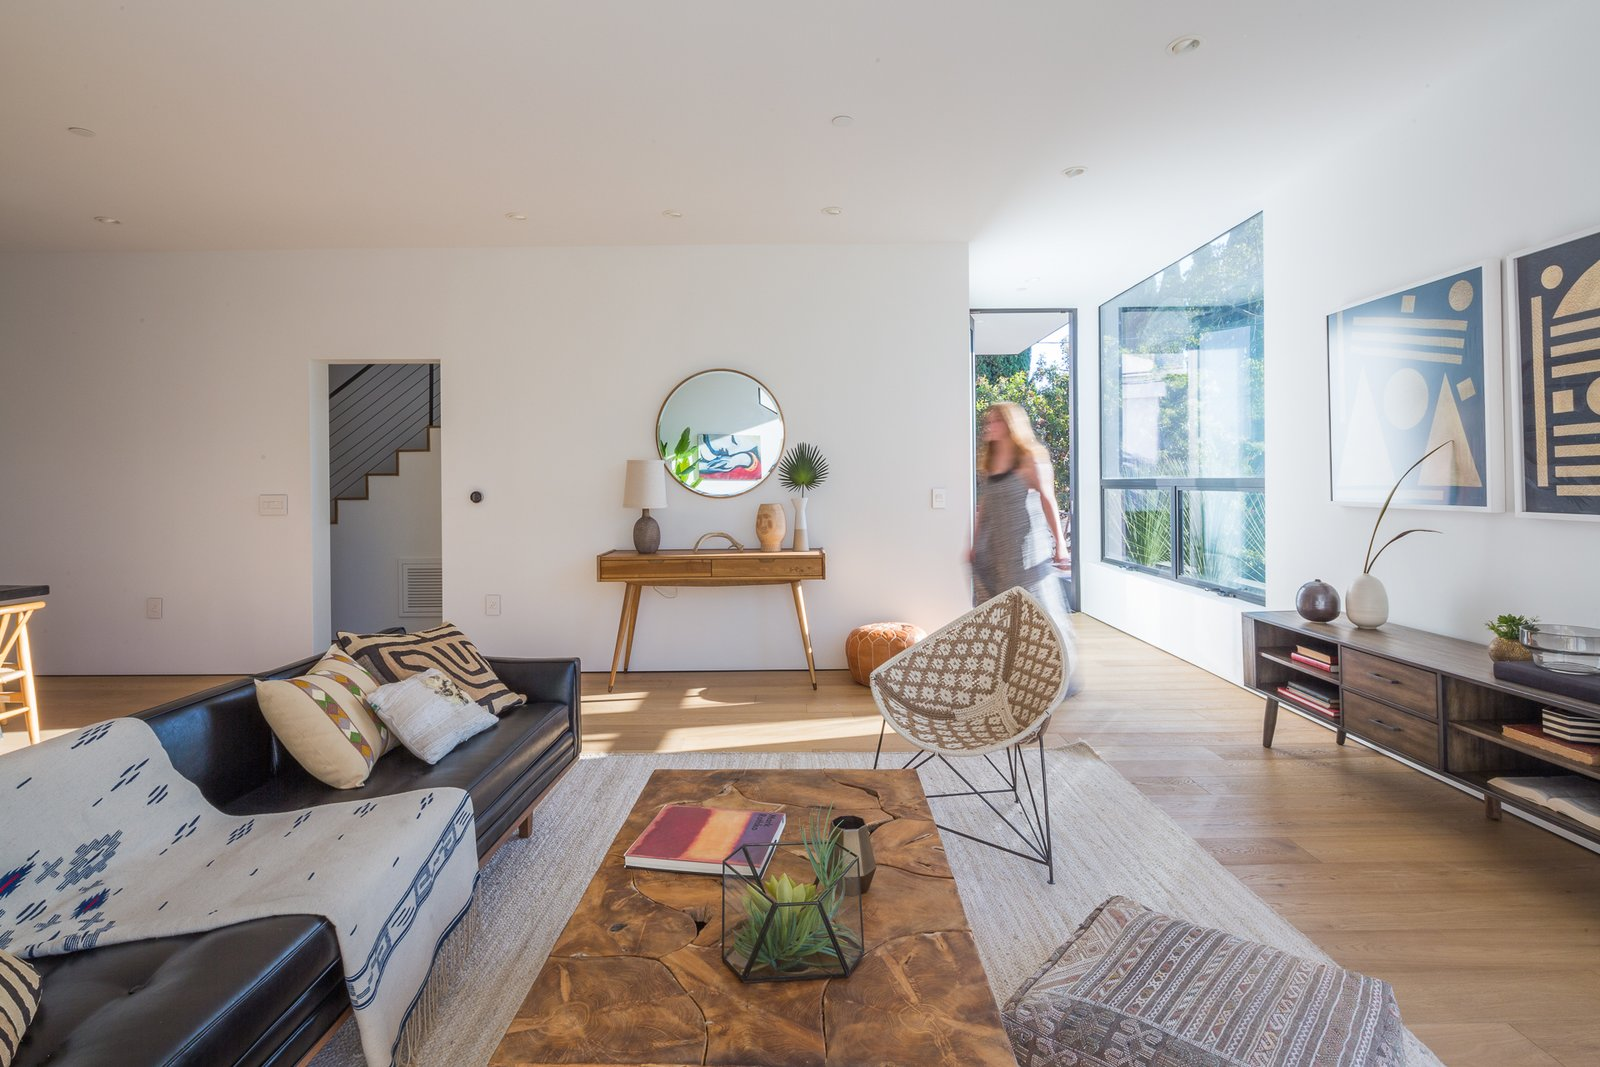 Living Room, Light Hardwood Floor, Sofa, Console Tables, Chair, Ottomans, and Recessed Lighting Living Room  Tilt-Shift House by ANX / Aaron Neubert Architects